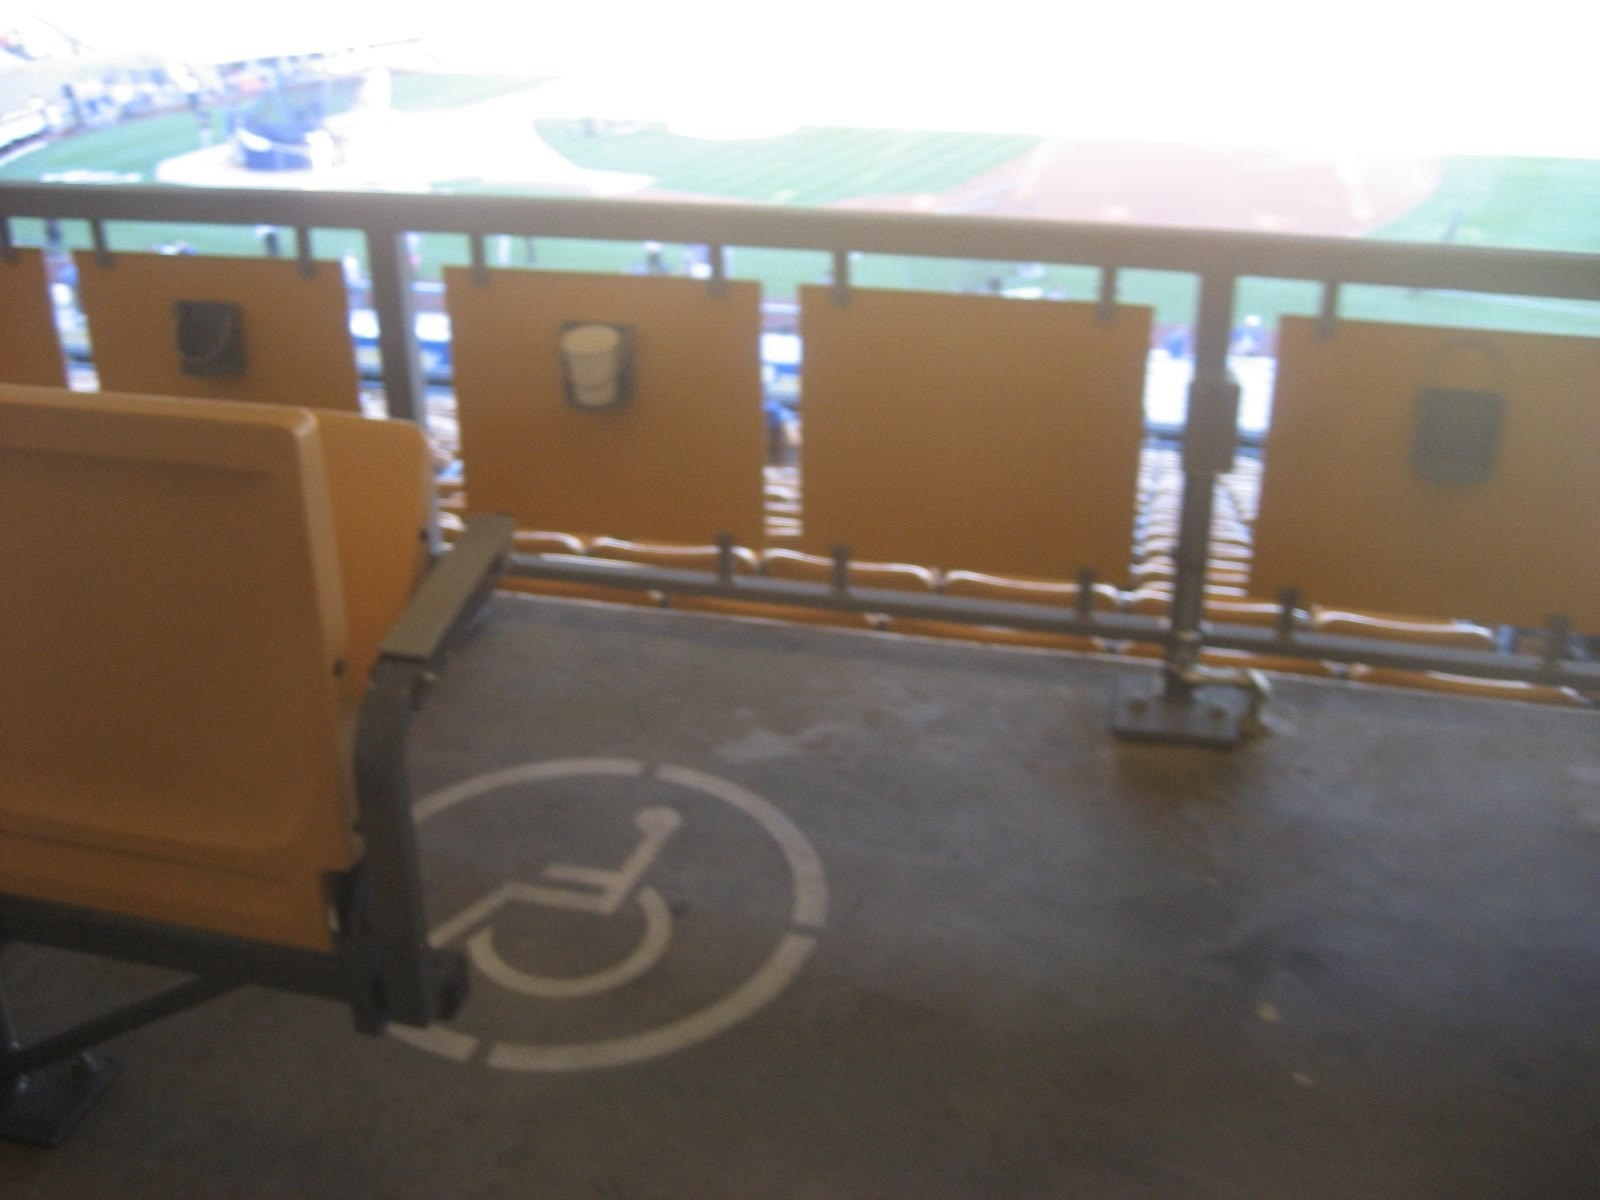 Most Current Los Angeles Dodgers Seating Guide – Dodger Stadium – Rateyourseats Regarding Dodger Side Chairs (View 15 of 20)